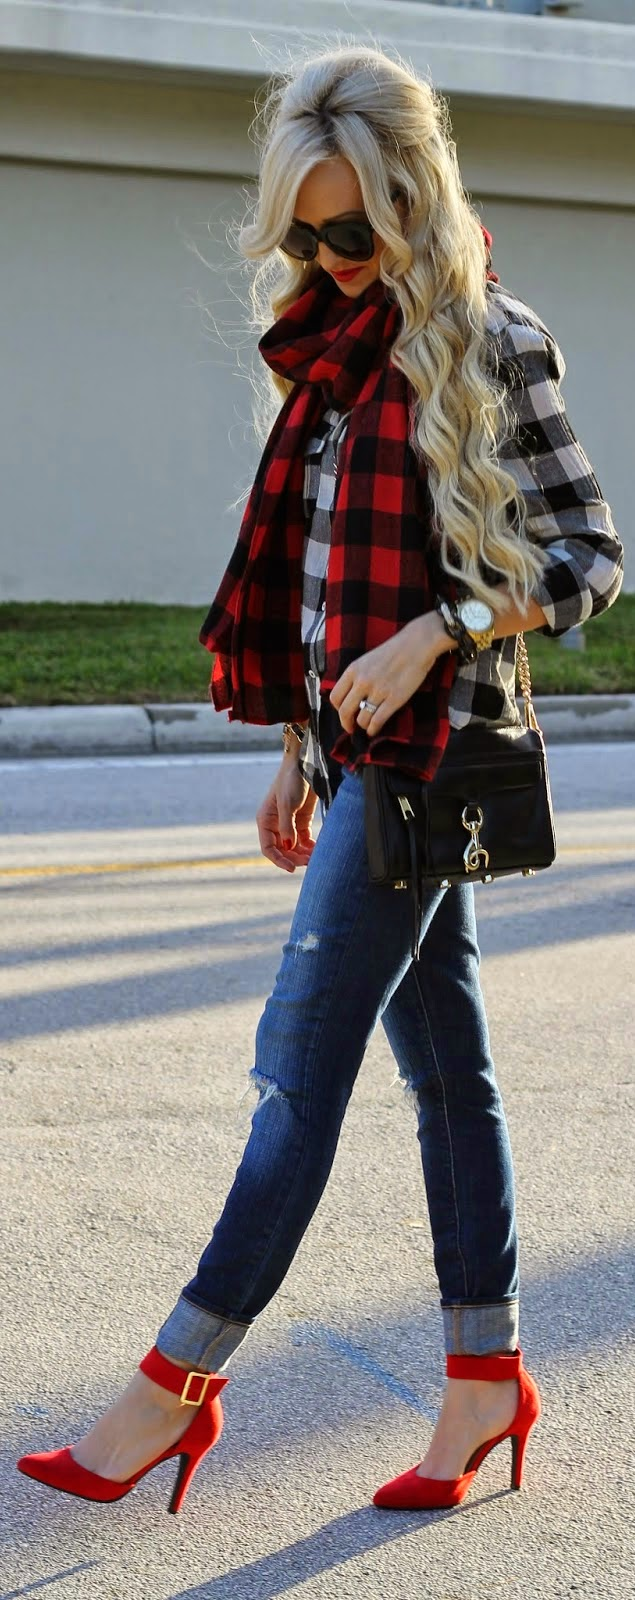 Buffalo Plaid with Ripped Jeans and Pop Red Heels | Street Outfits